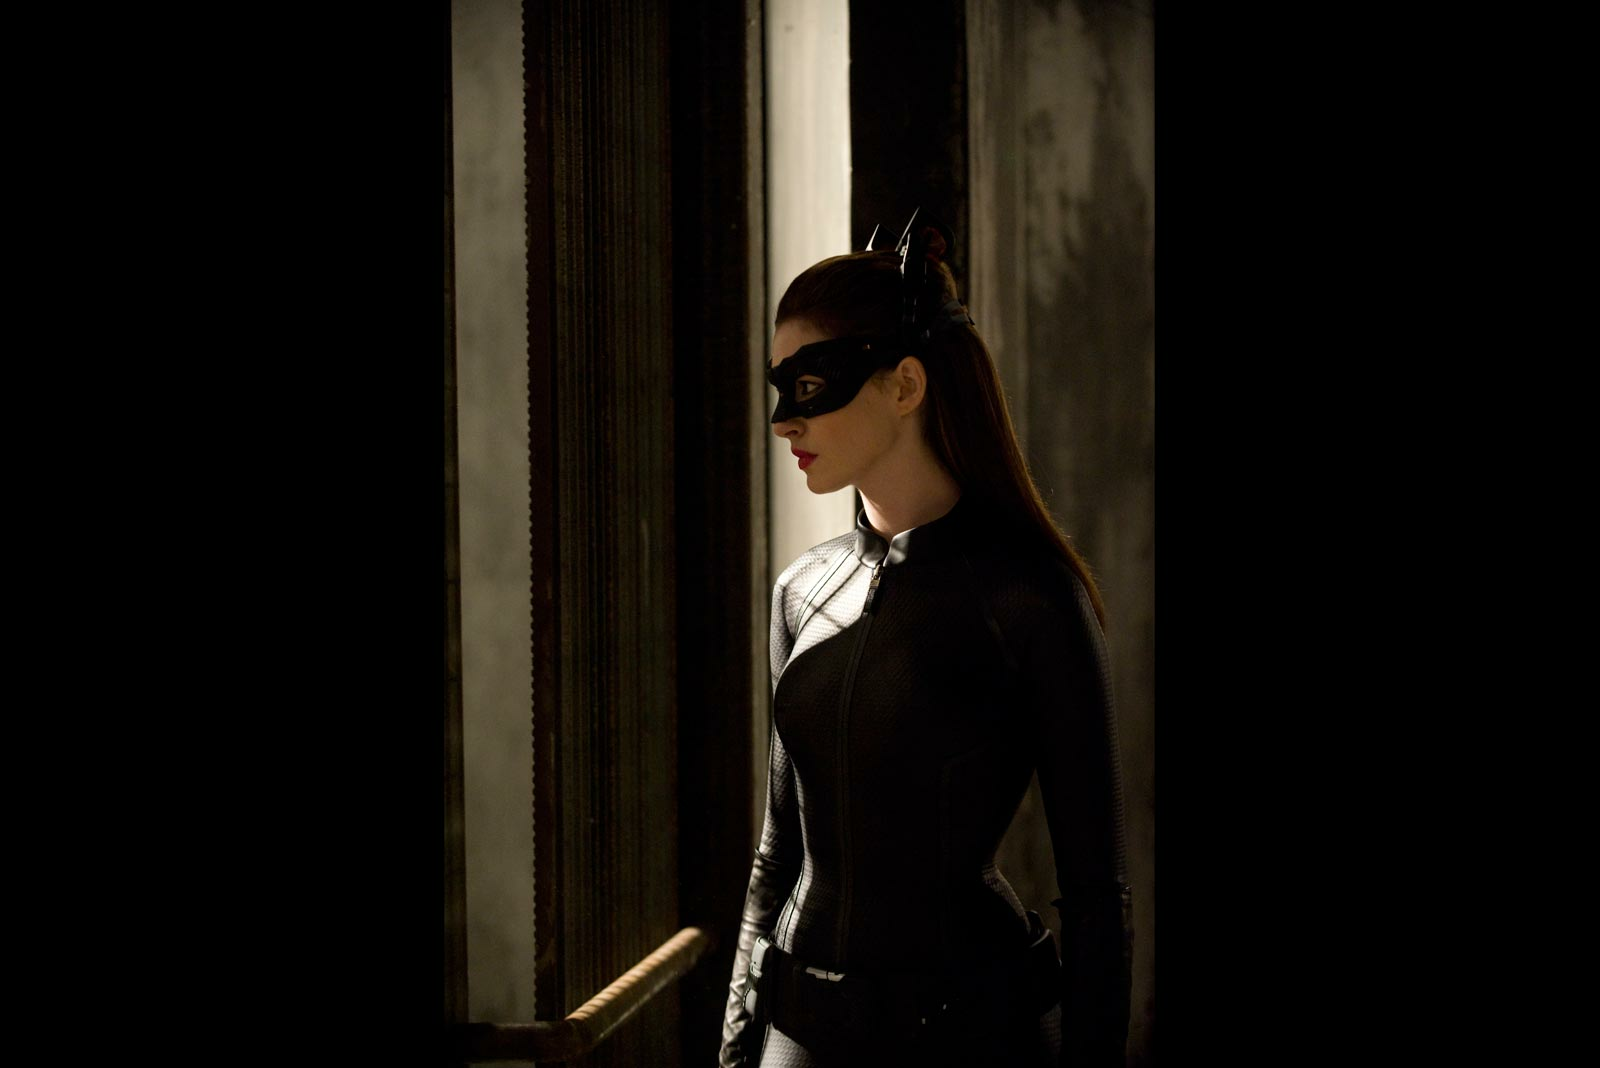 'The Dark Knight Rises's Catwoman: a (Shhh!) with a Heart ...